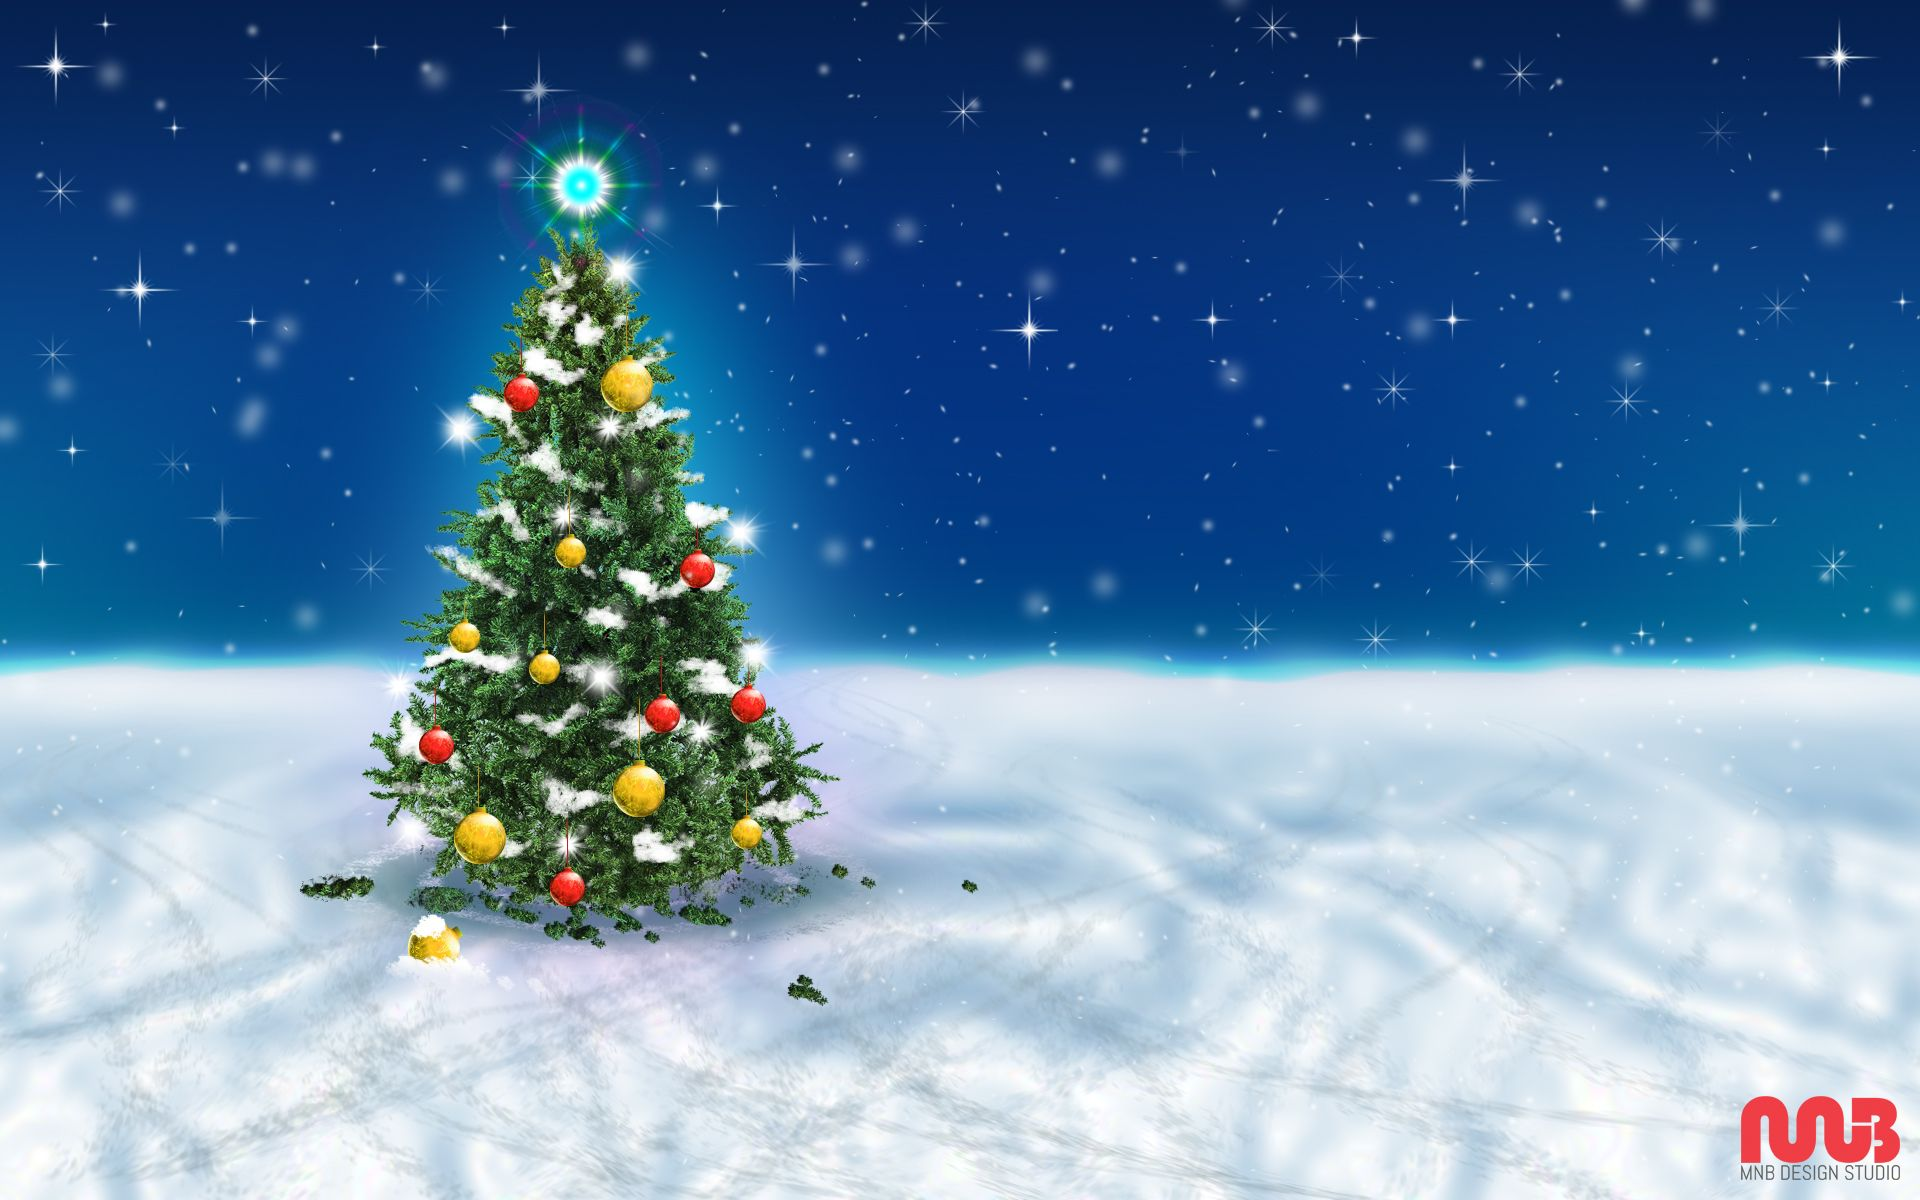 christmas wallpapers high resolution christmas desktop tree desktop wallpaper christmas wallpaper backgrounds christmas wallpapers high resolution